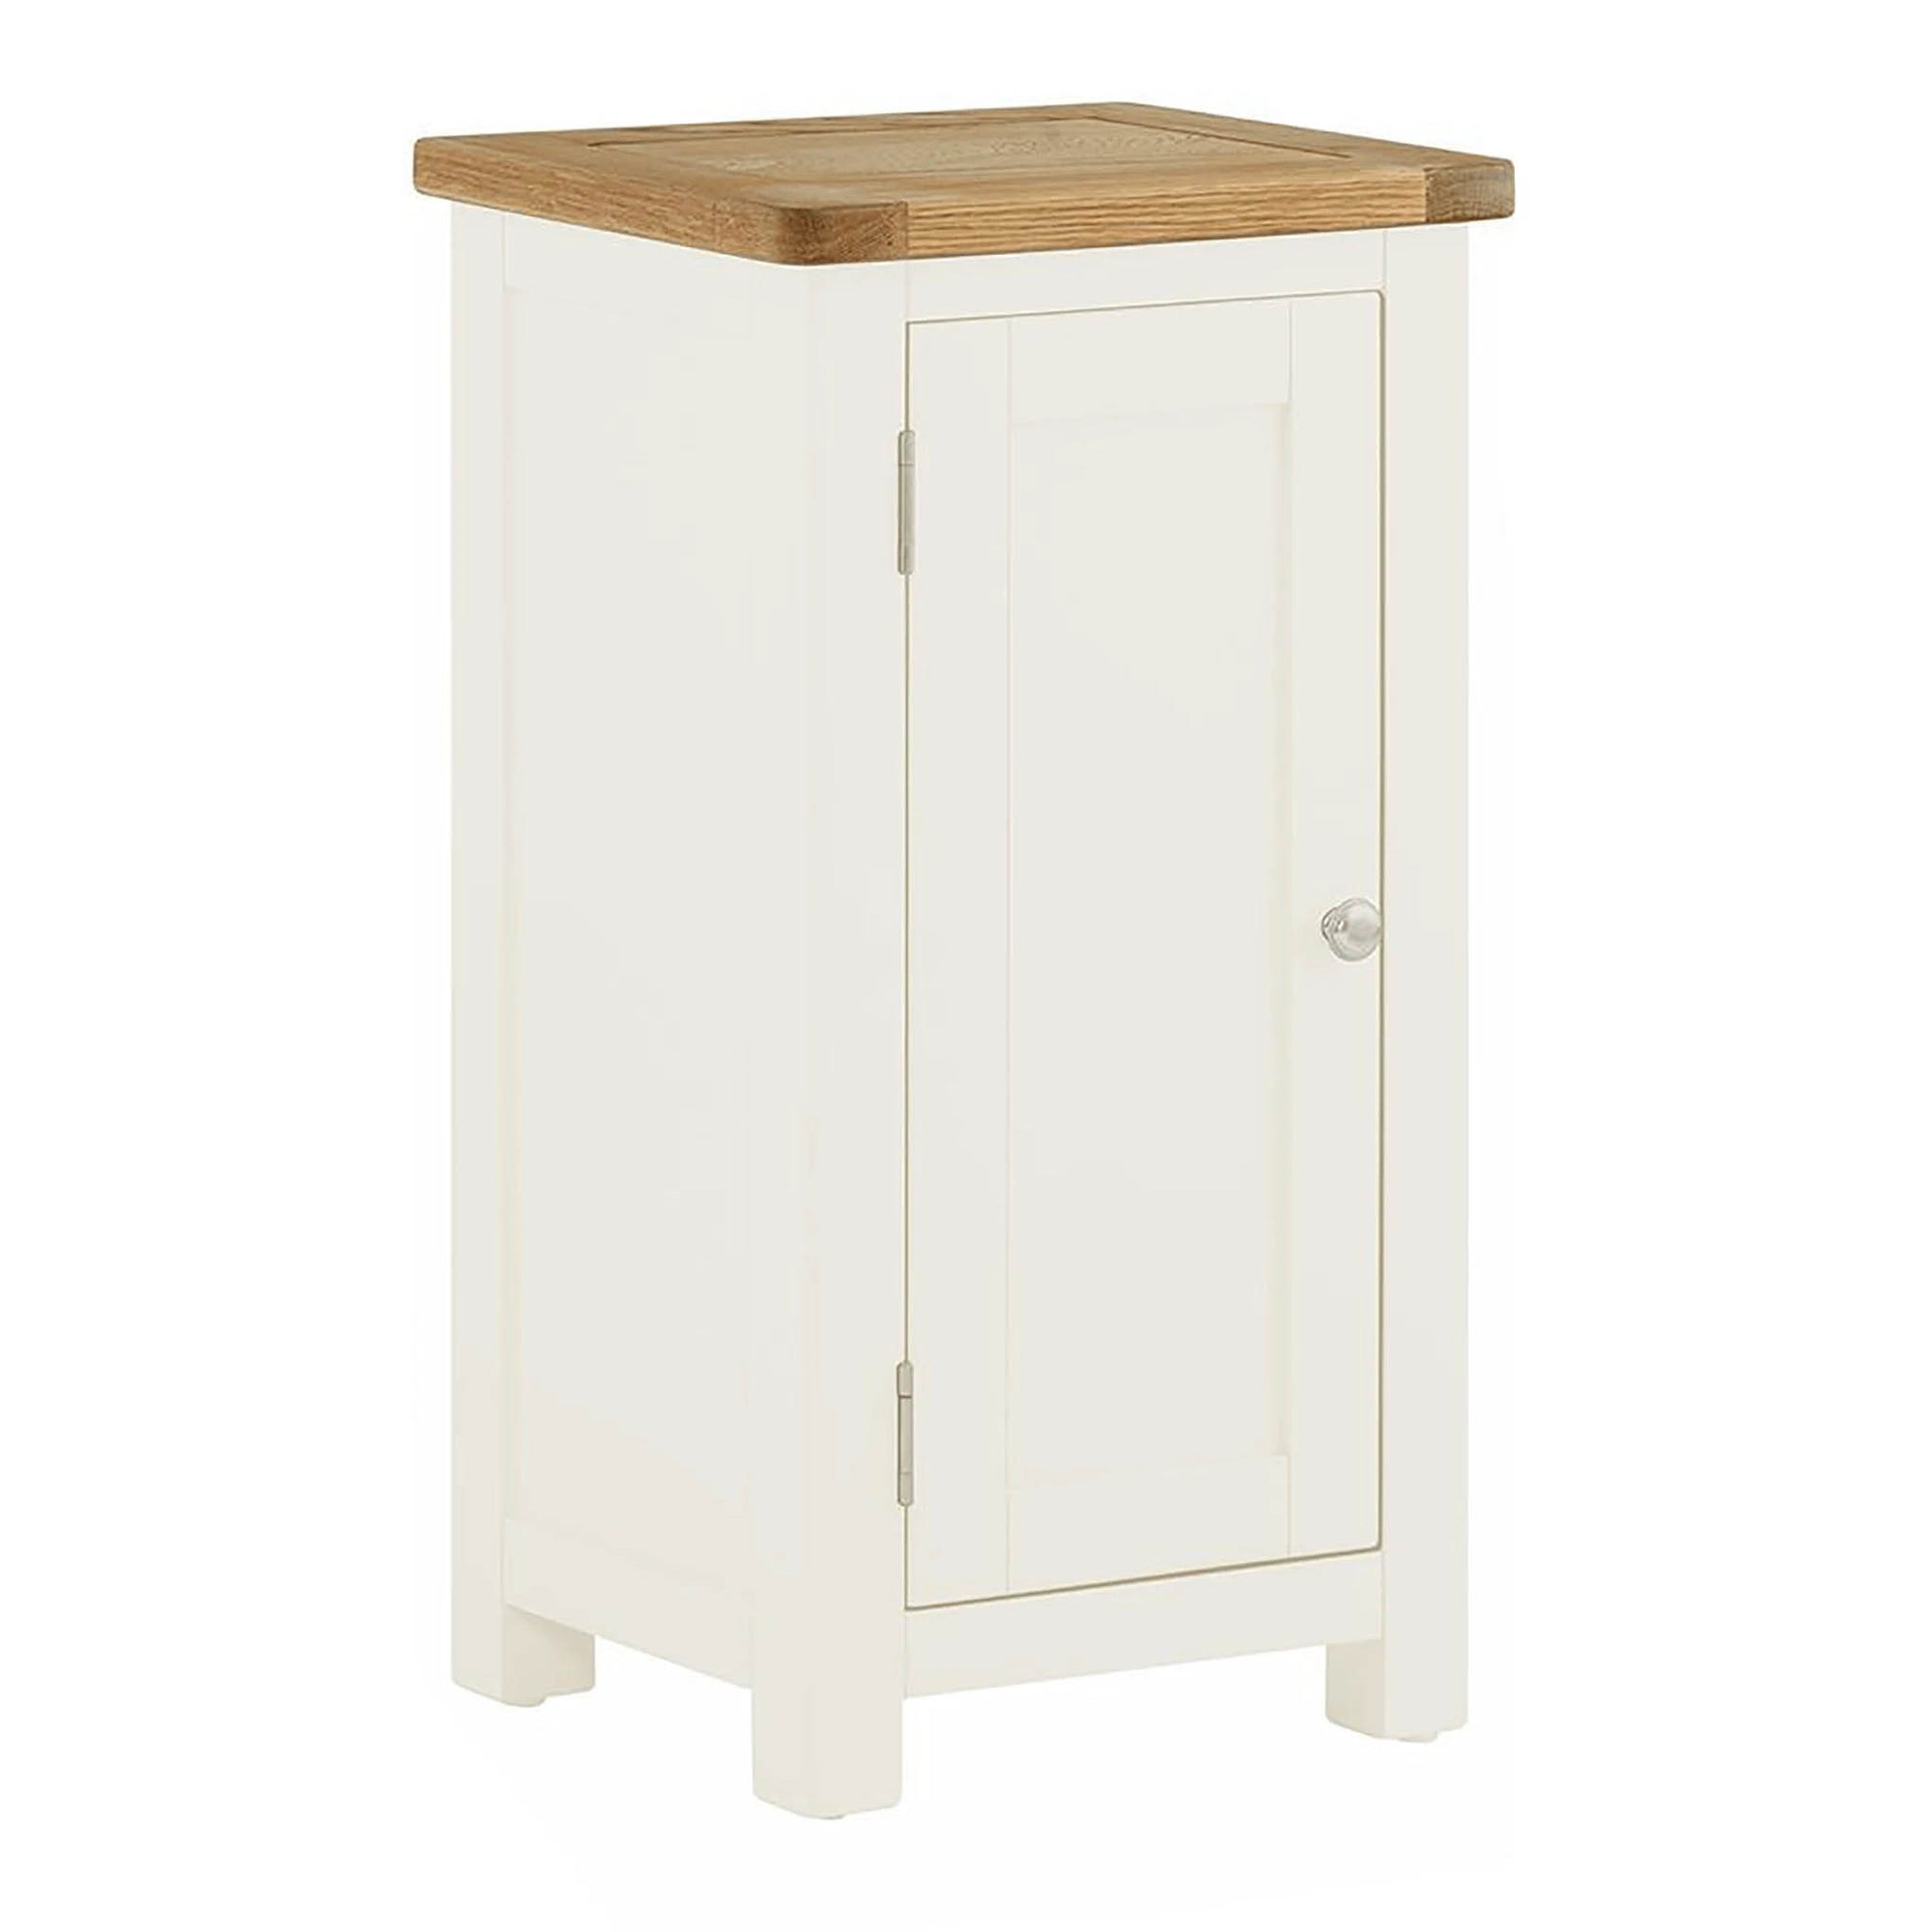 The Padstow White Narrow Bathroom Cabinet with 1 Door from Roseland Furniture